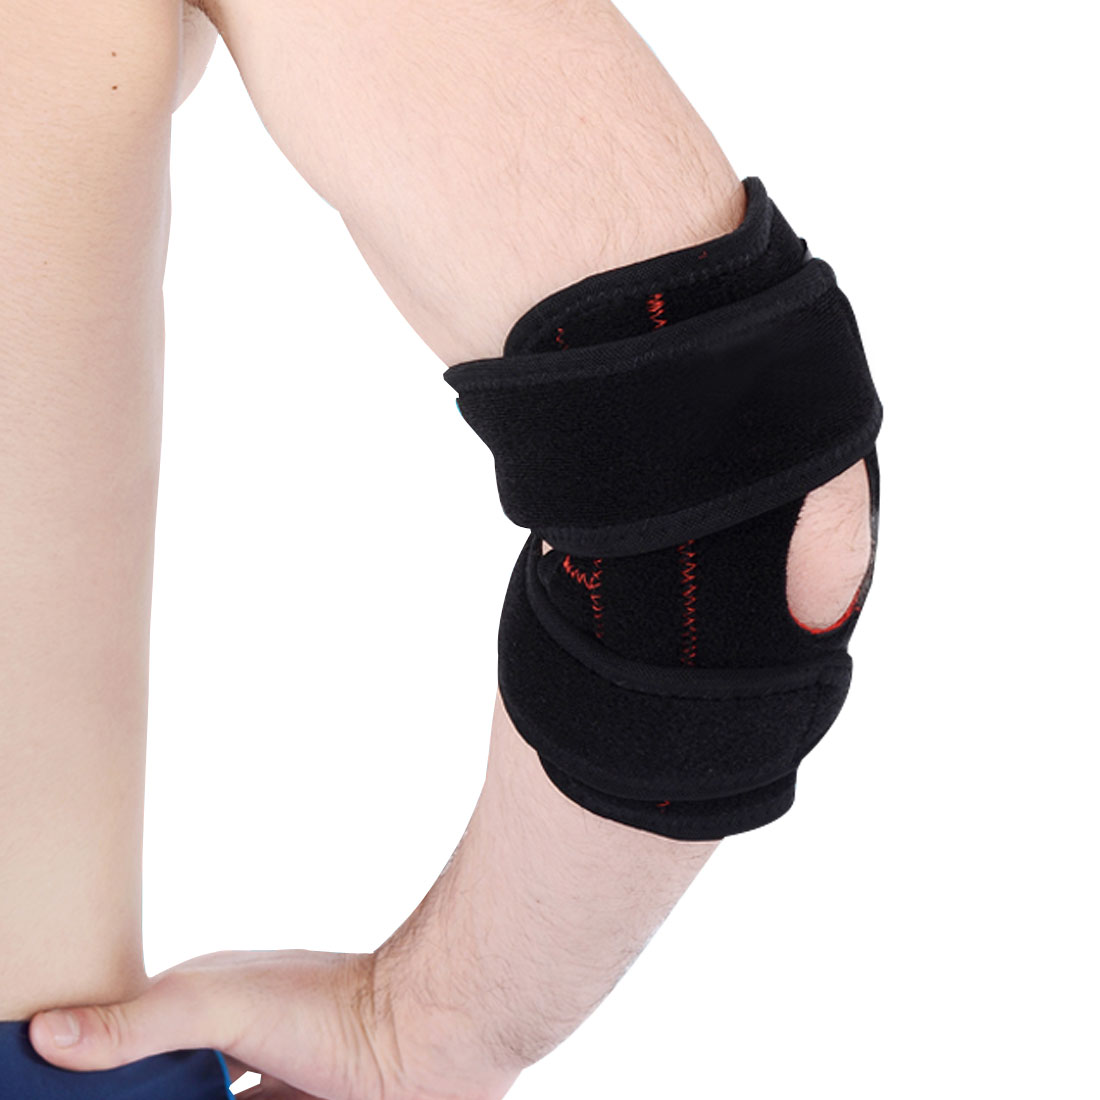 Neoprene Adjustable Gym Sport Elbow Support Strap Brace Arthritis Protect